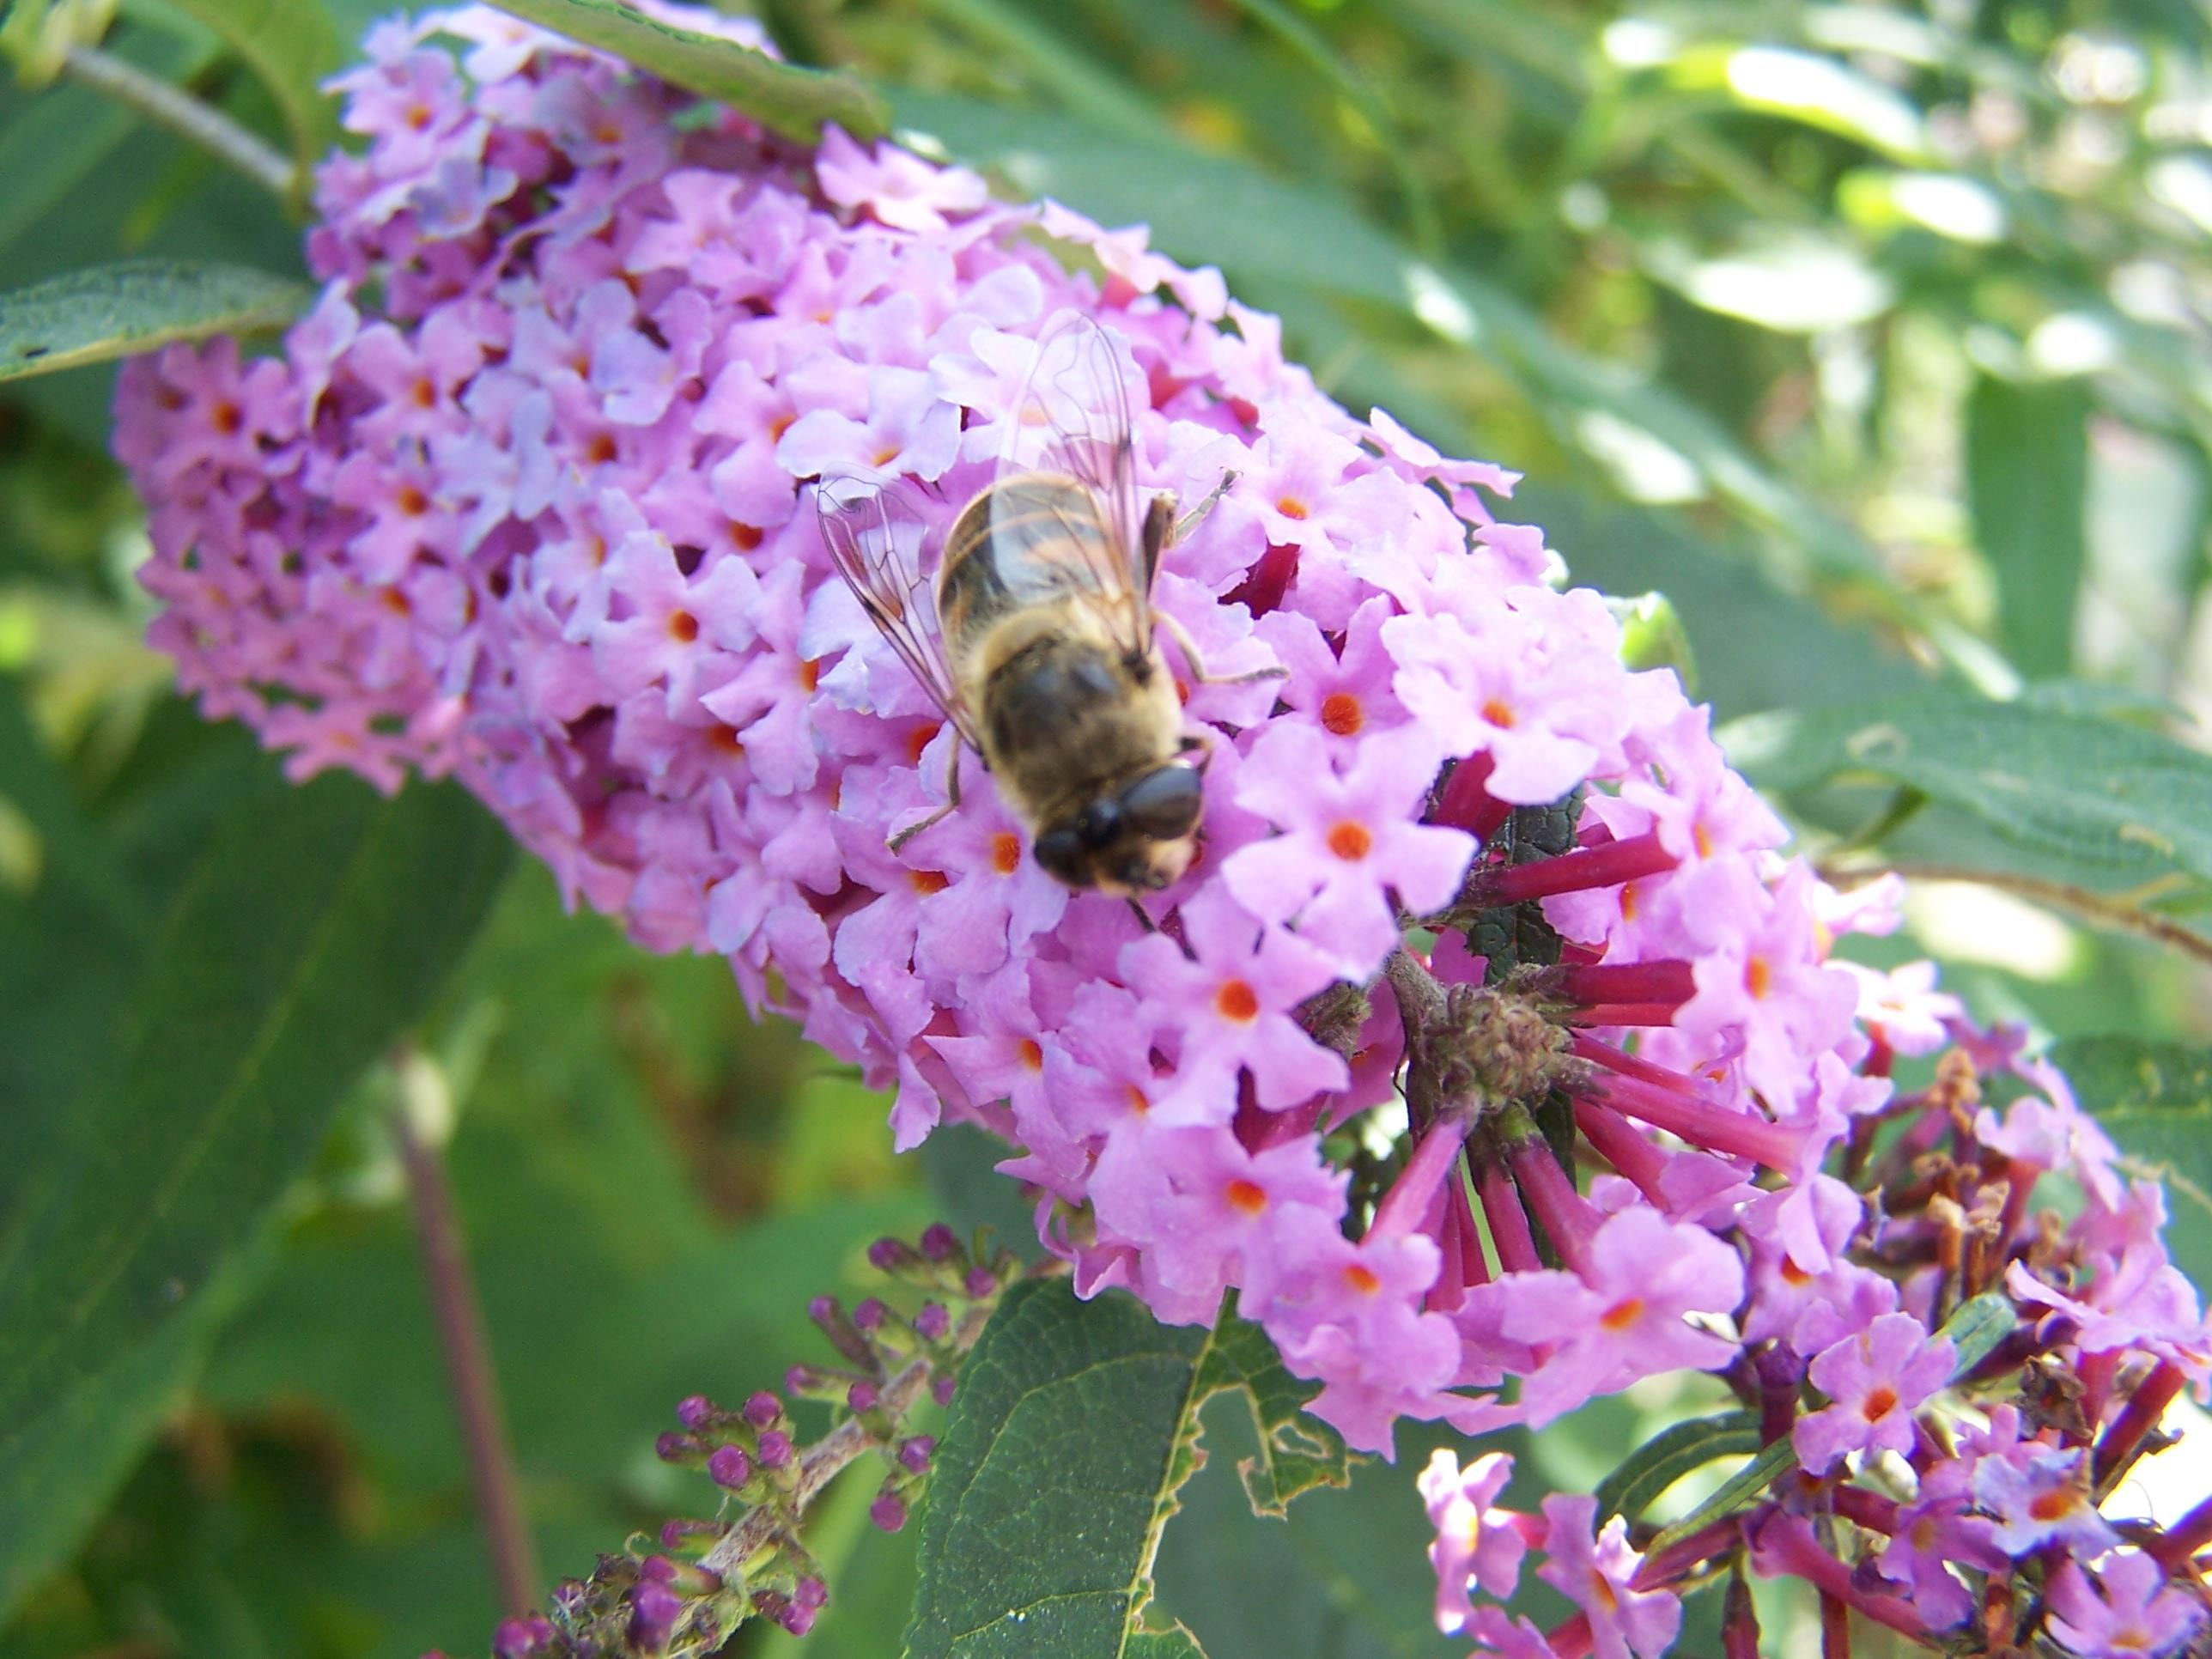 Free photo Purple Flower Bee Nature Insect Free Image on